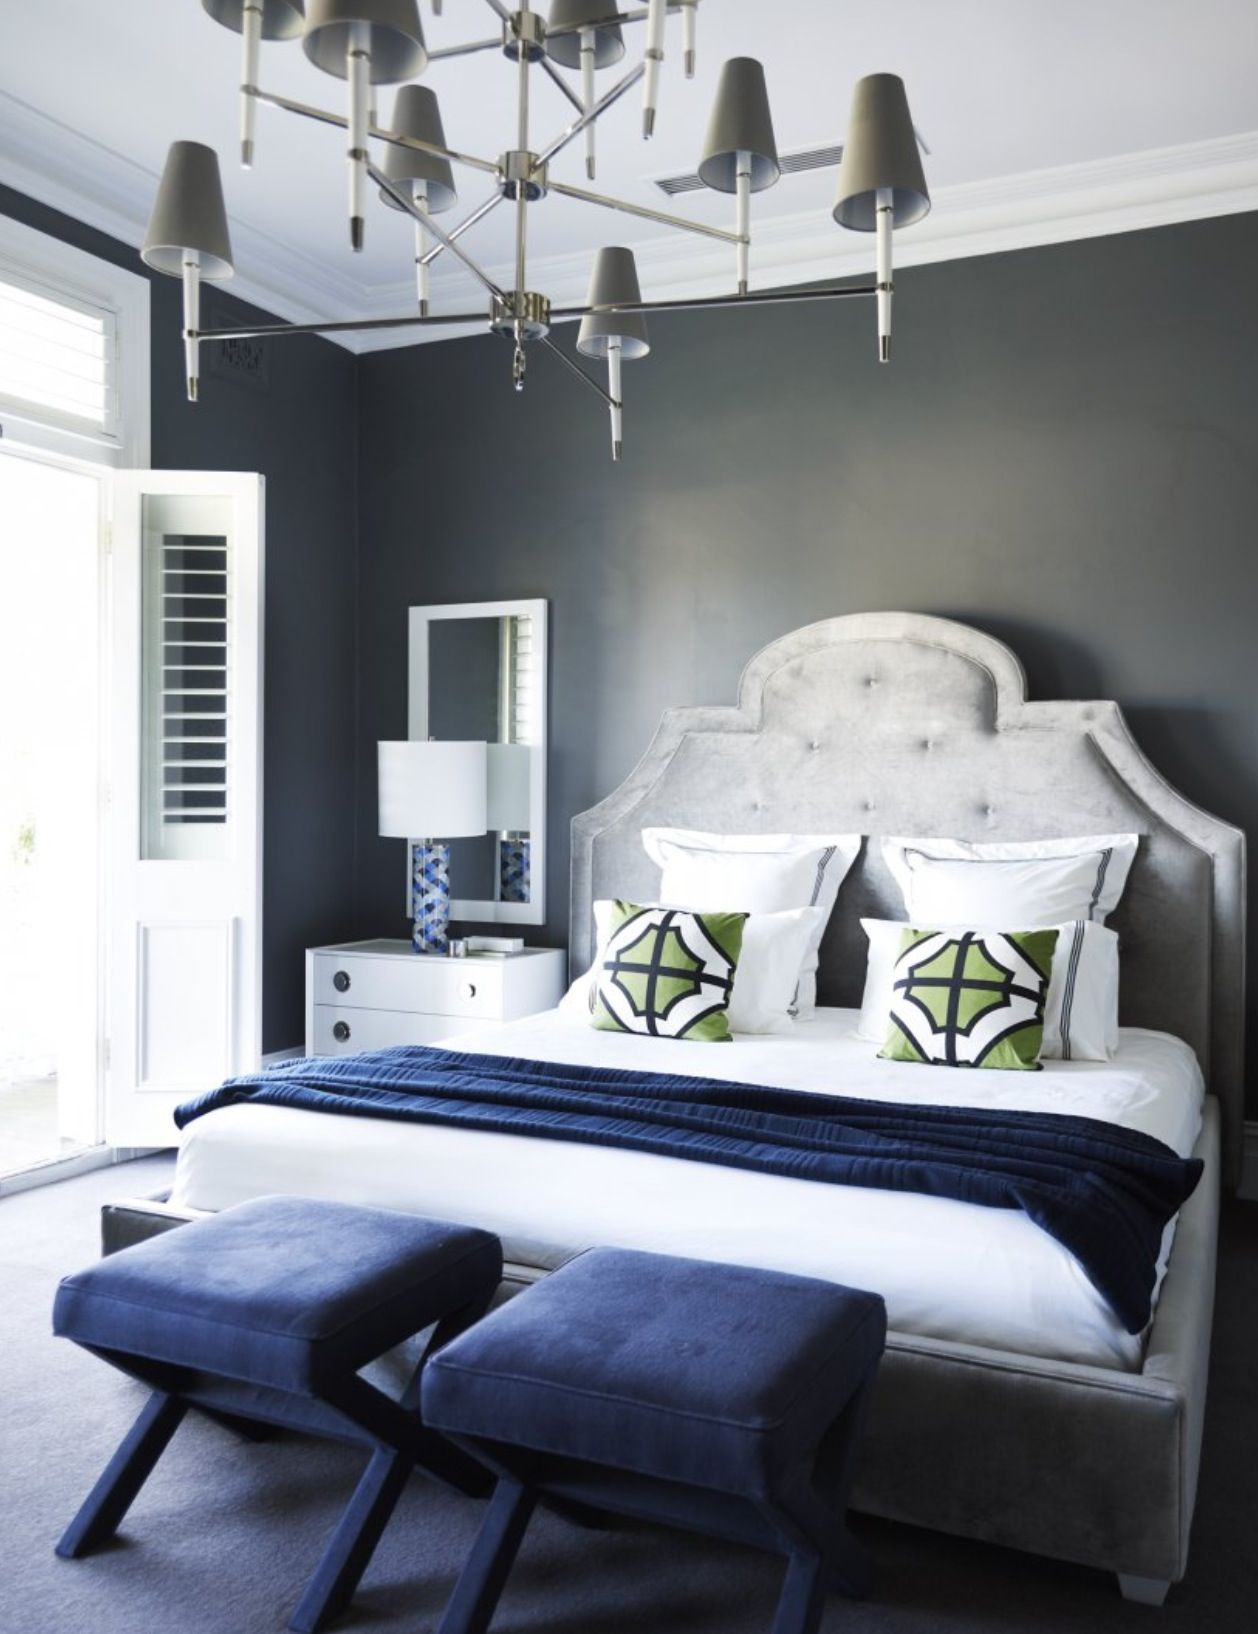 Flip flop walls and headboard light grey paint with darker grey